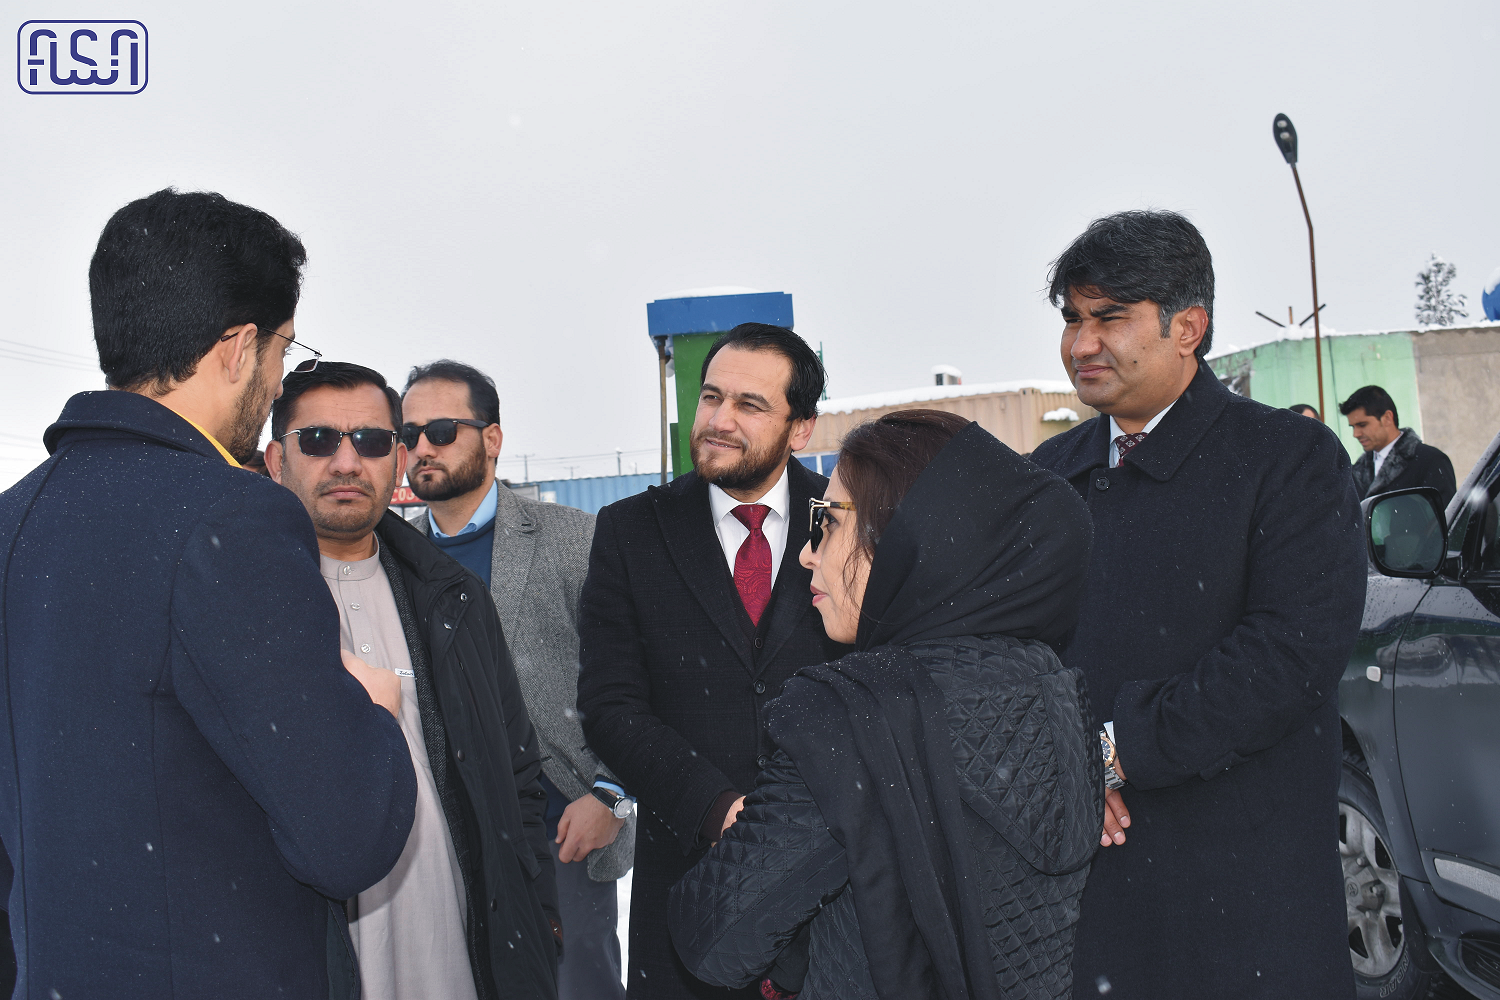 Afghanistan National Standards Authority, in cooperation with other relevant agencies, monitored the Kabul pumps station.